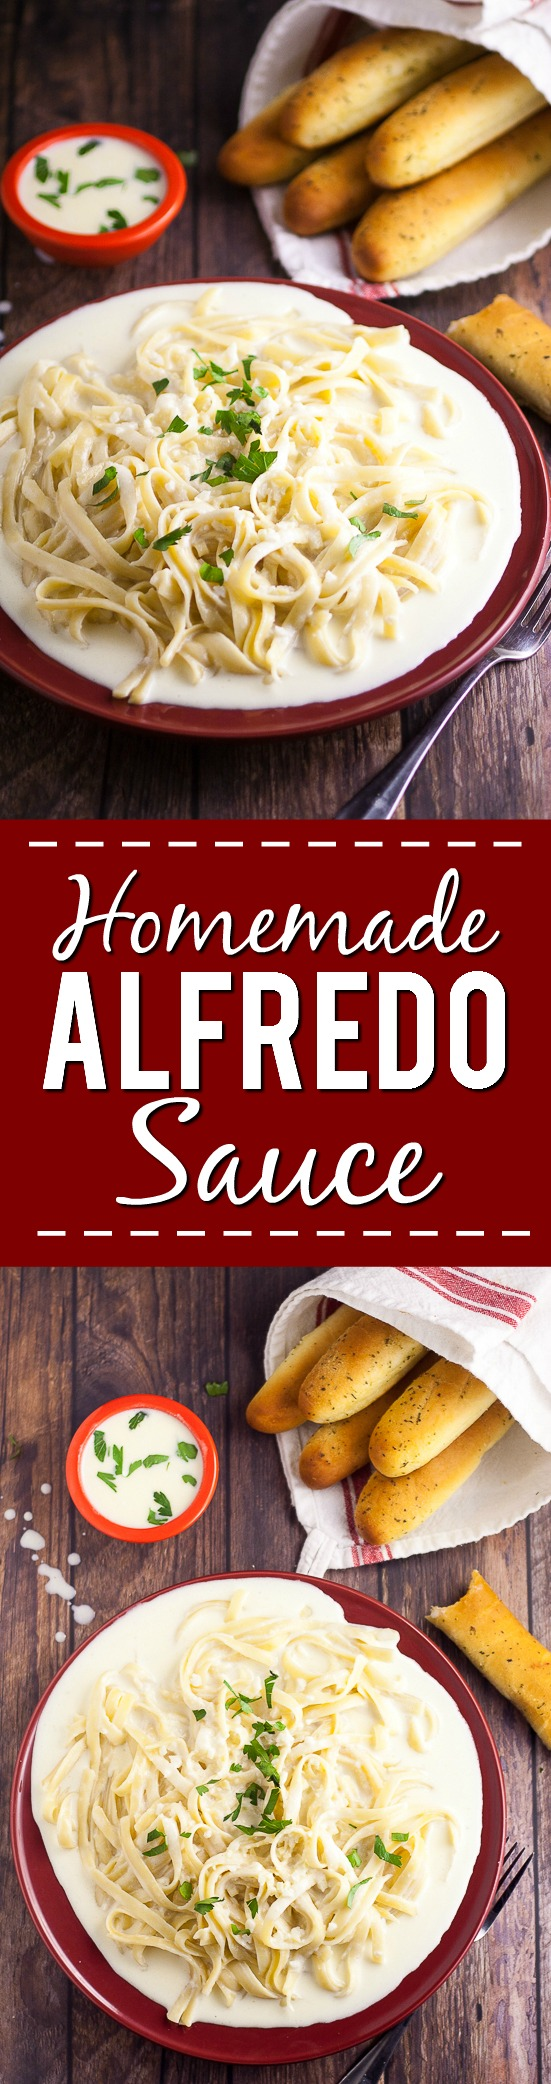 Homemade Alfredo Sauce Recipe - Make this rich and creamy Homemade Alfredo Sauce recipe that tastes as amazing as your favorite Italian restaurant, right in your own kitchen so that you can eat it whenever you want!